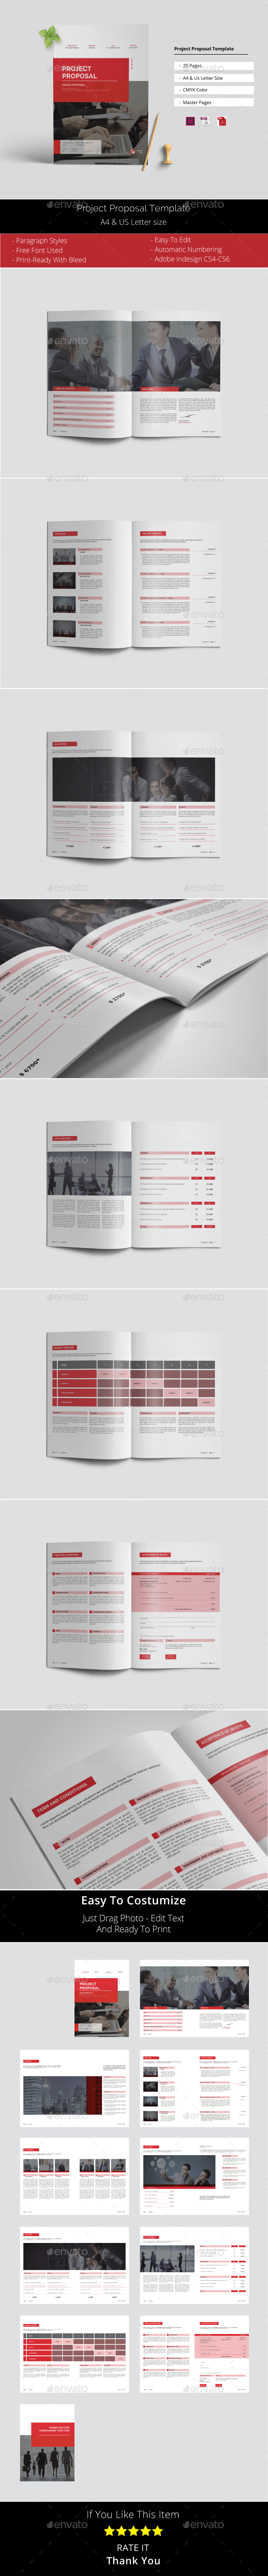 Project Proposal Template Vol. 2 - Proposals & Invoices Stationery